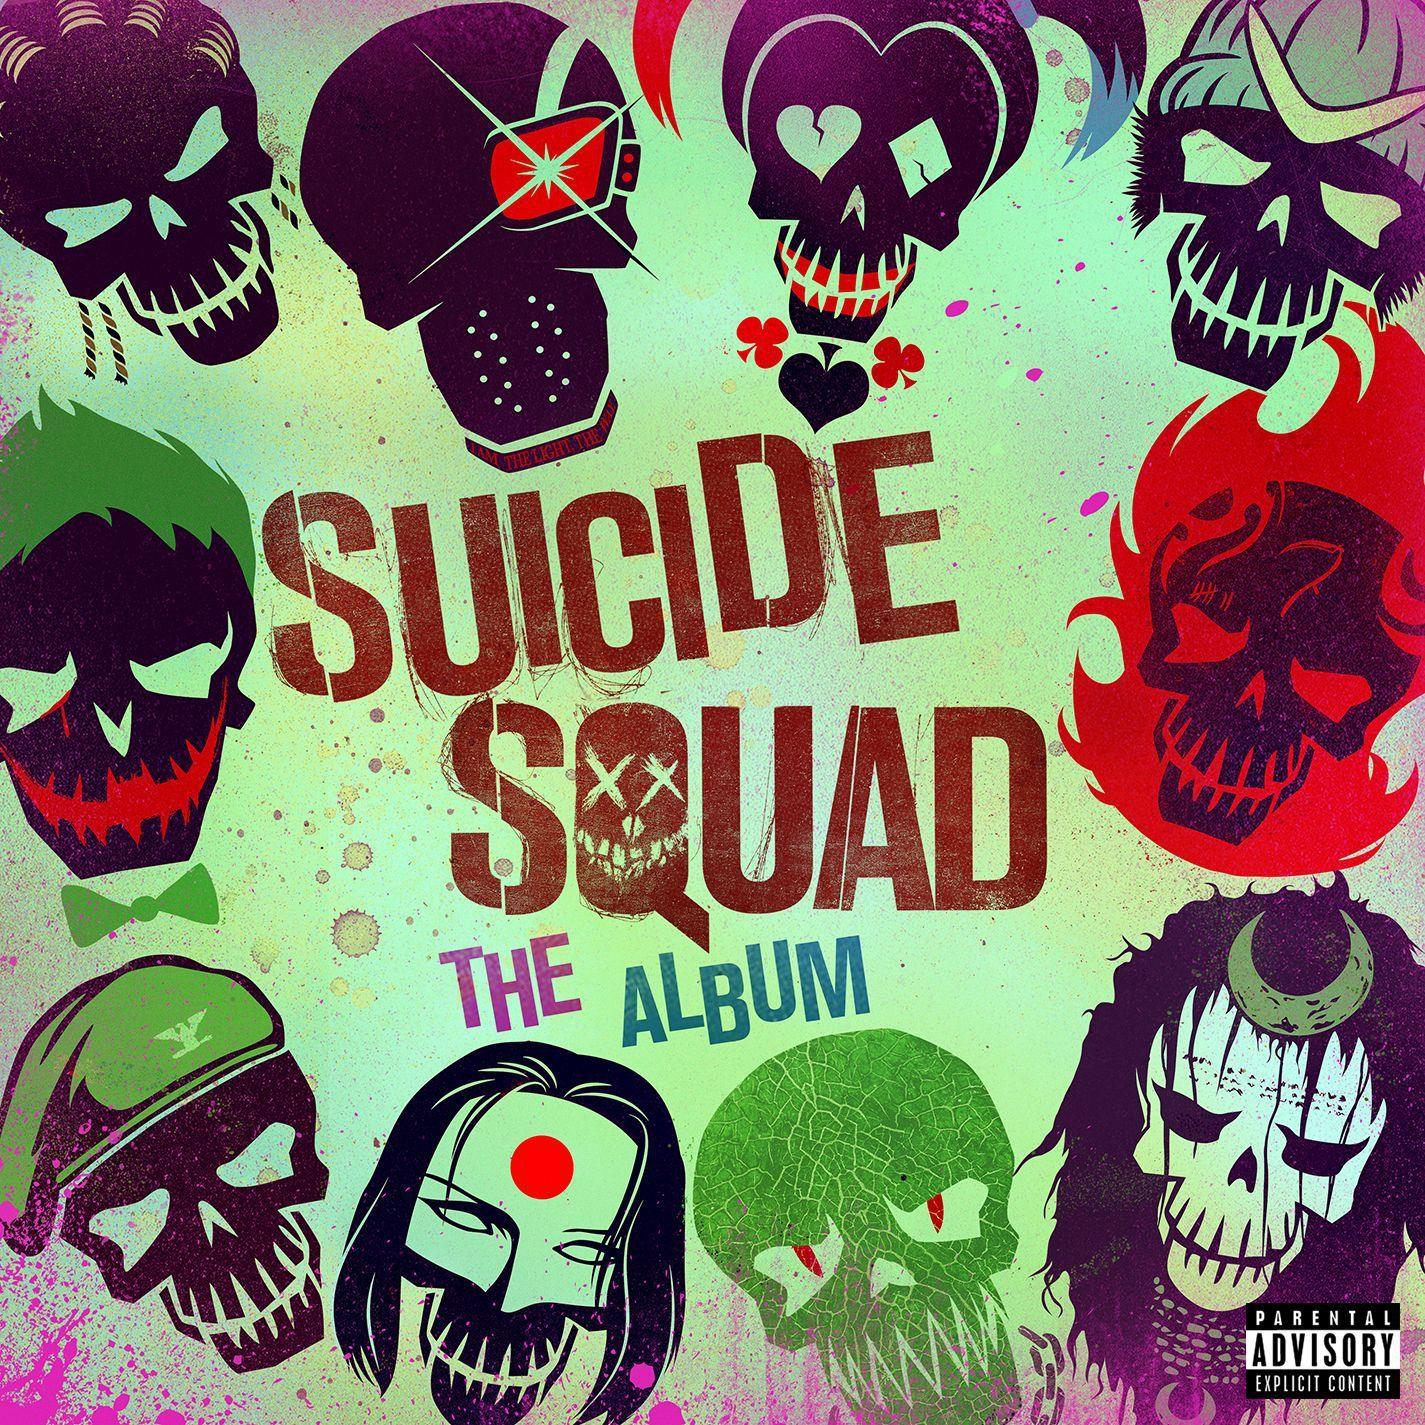 Soundtrack - Suicide Squad - The Album album cover